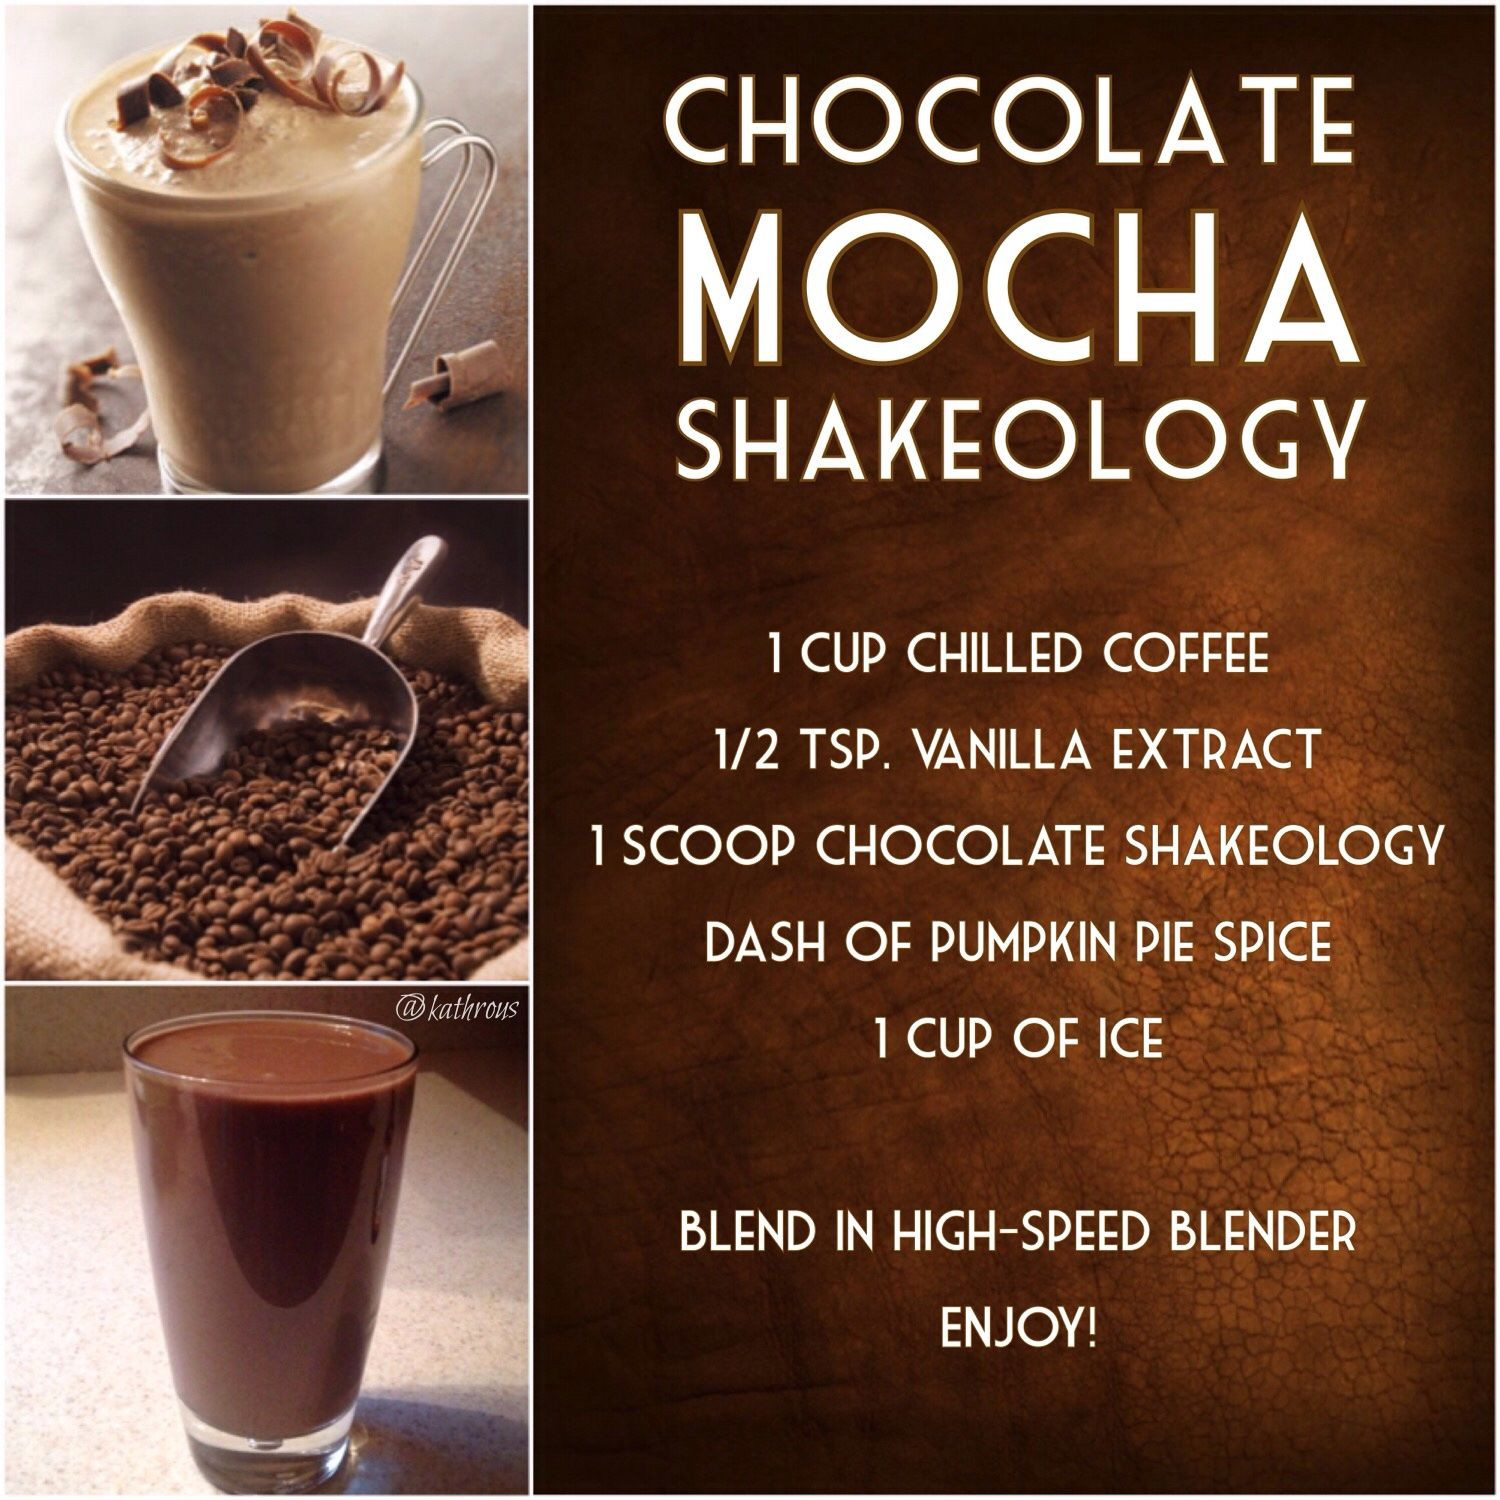 Shakeology Vegan Chocolate Recipes  Chocolate Mocha Shakeology